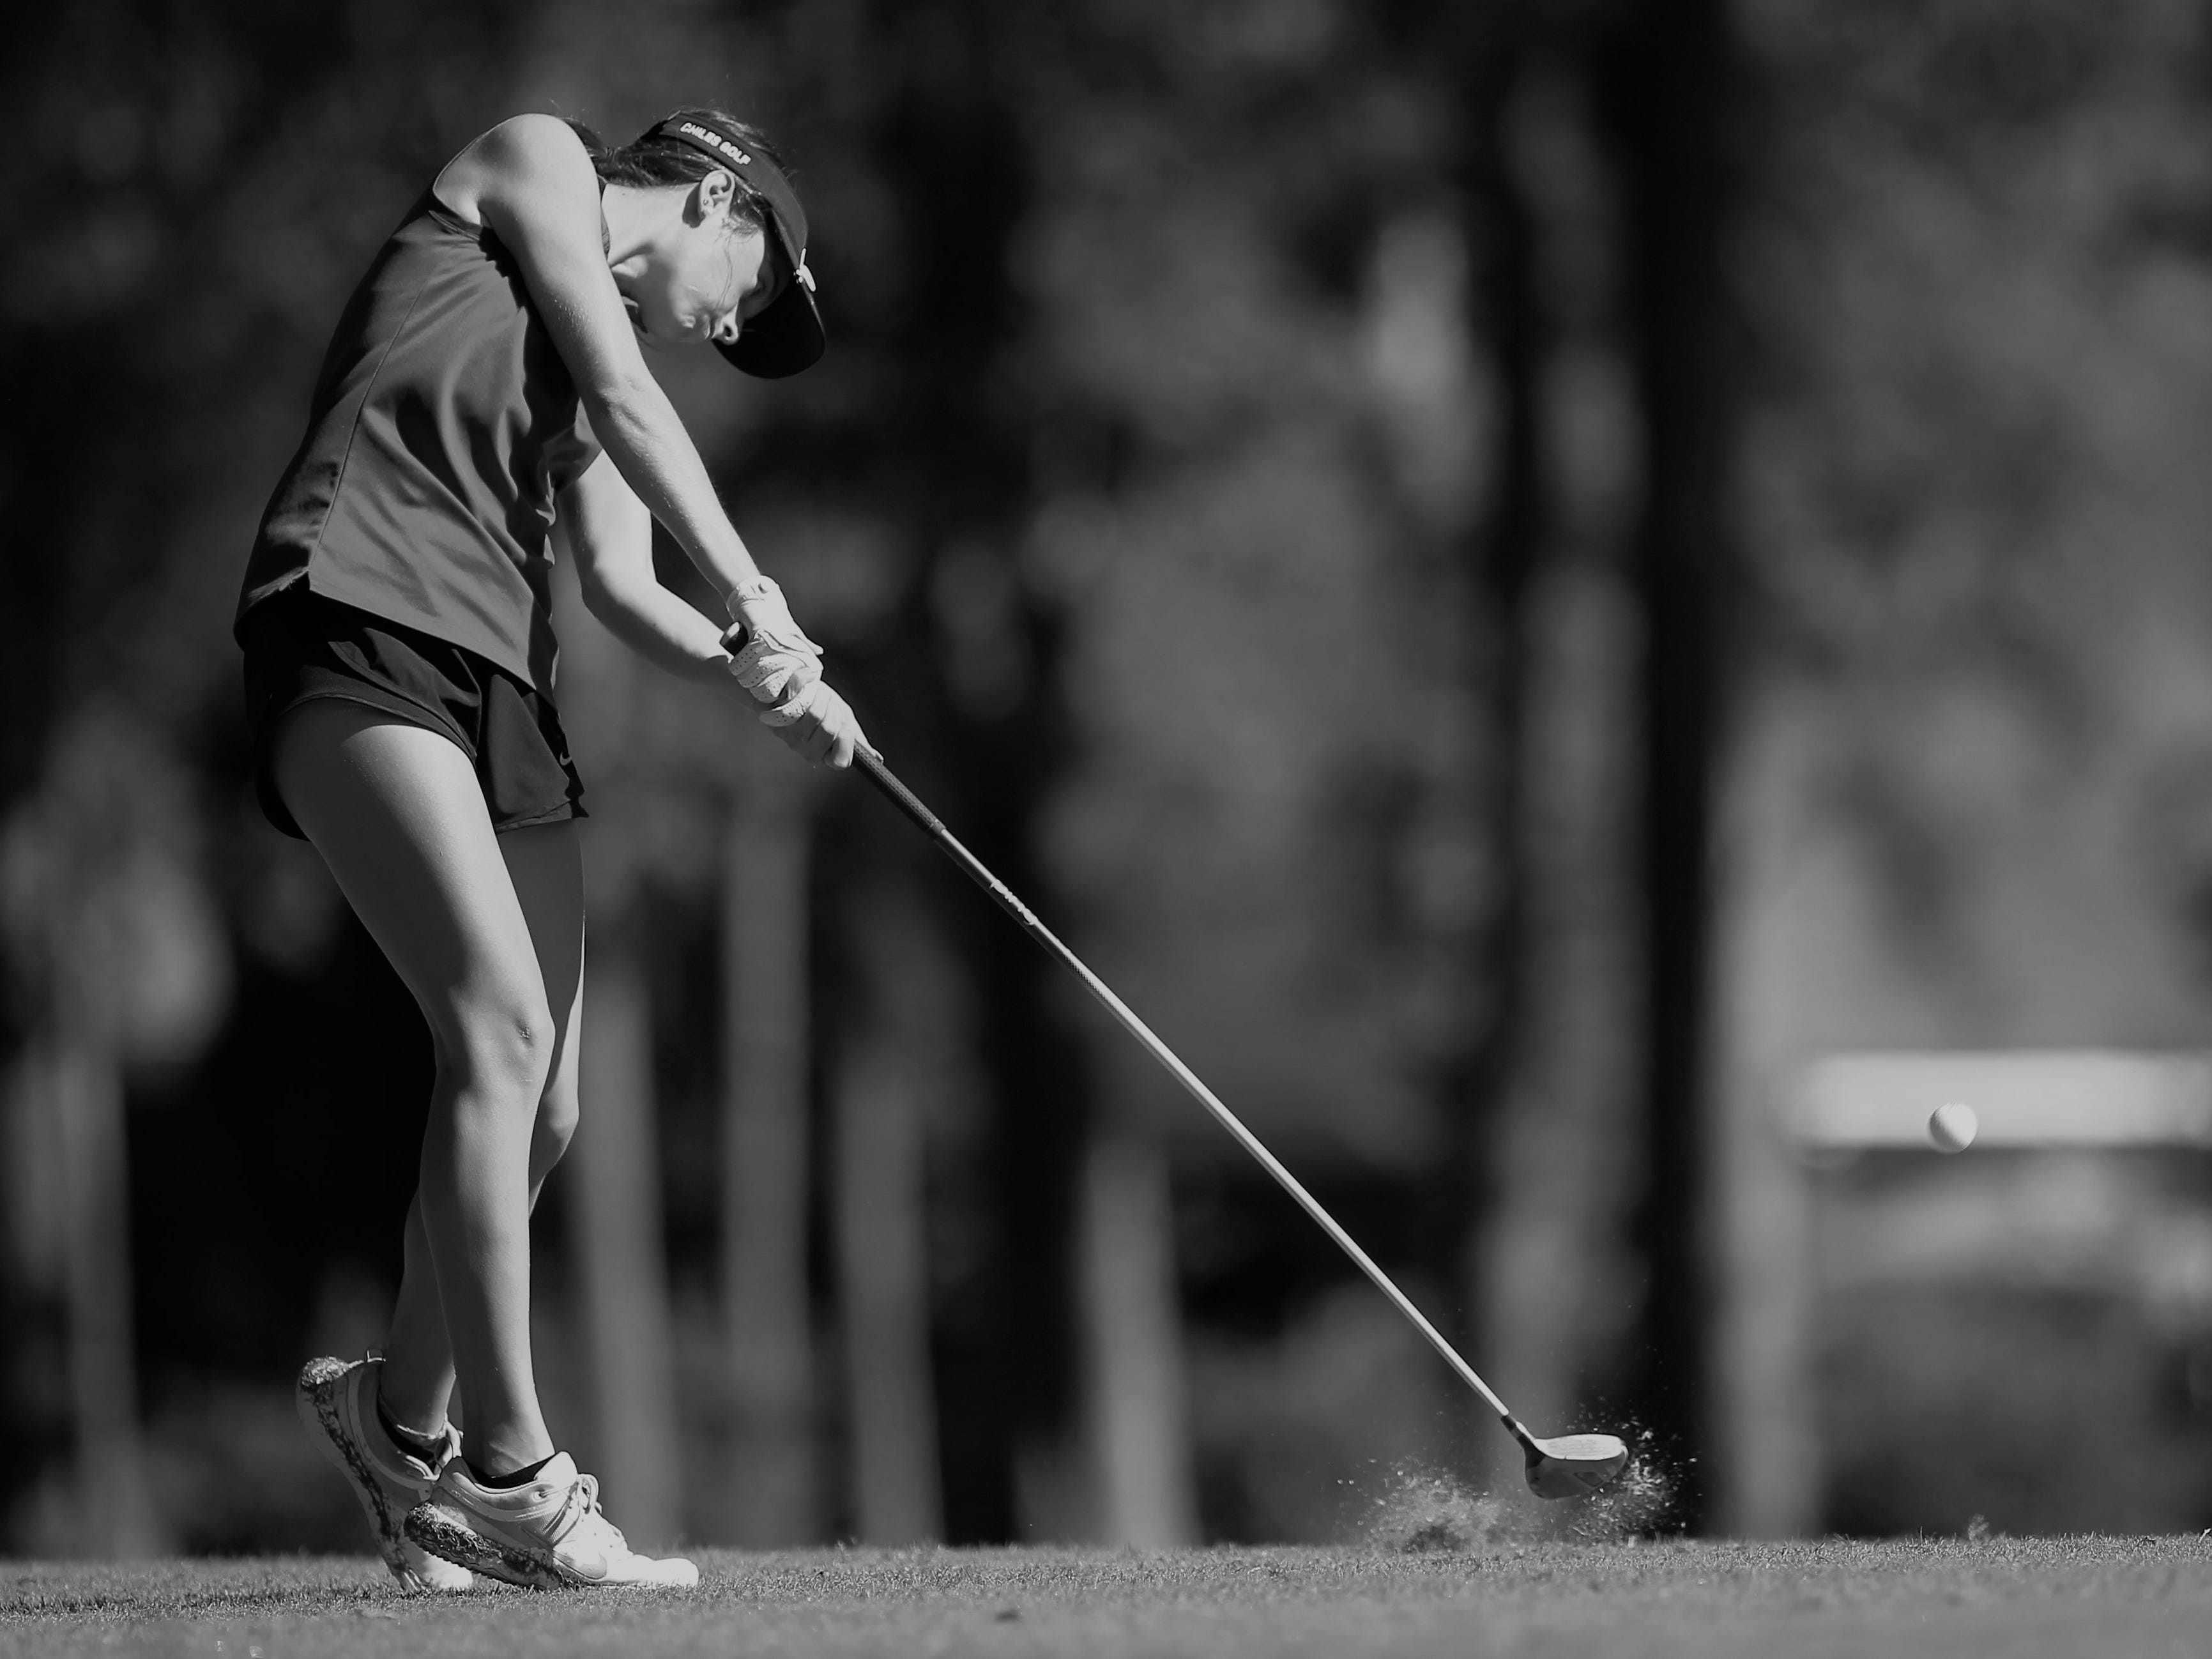 Chiles sophomore Abby LaMothe tees off during the girls golf Panhandle Invitational at Killearn Country Club, Oct. 4, 2018.